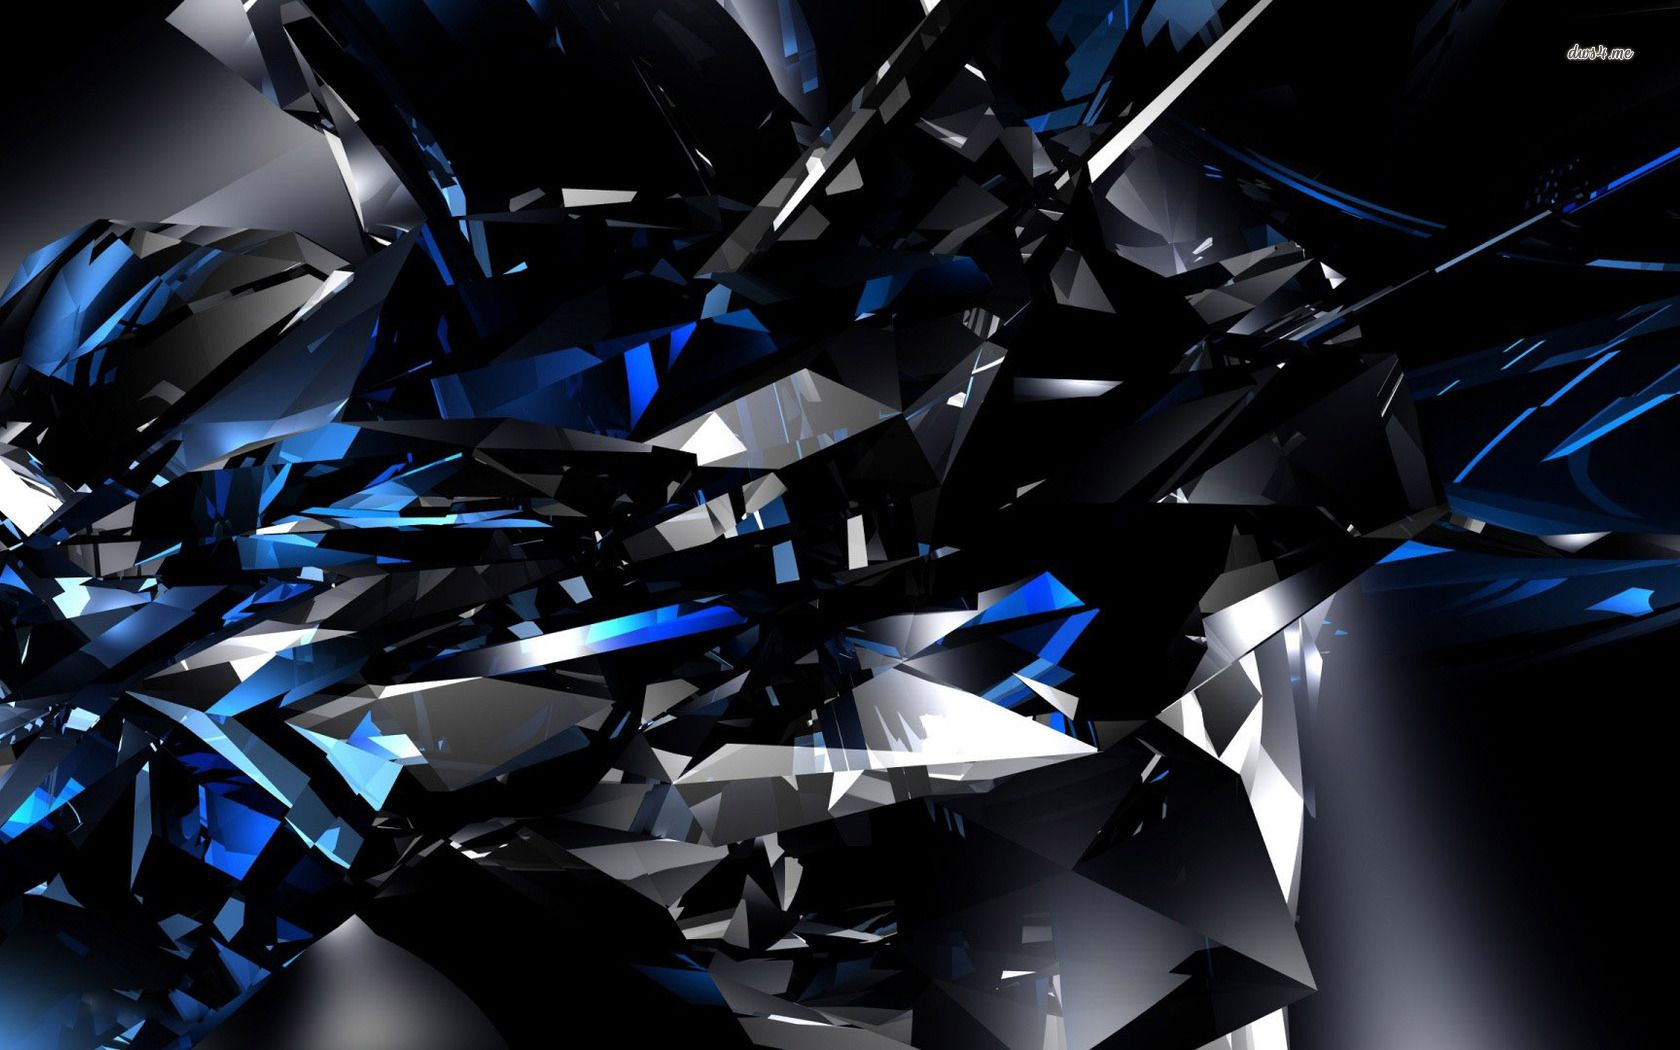 Black And Blue Crystals Hd Wallpaper Black And Blue Background Black And Blue Wallpaper Blue Wallpapers